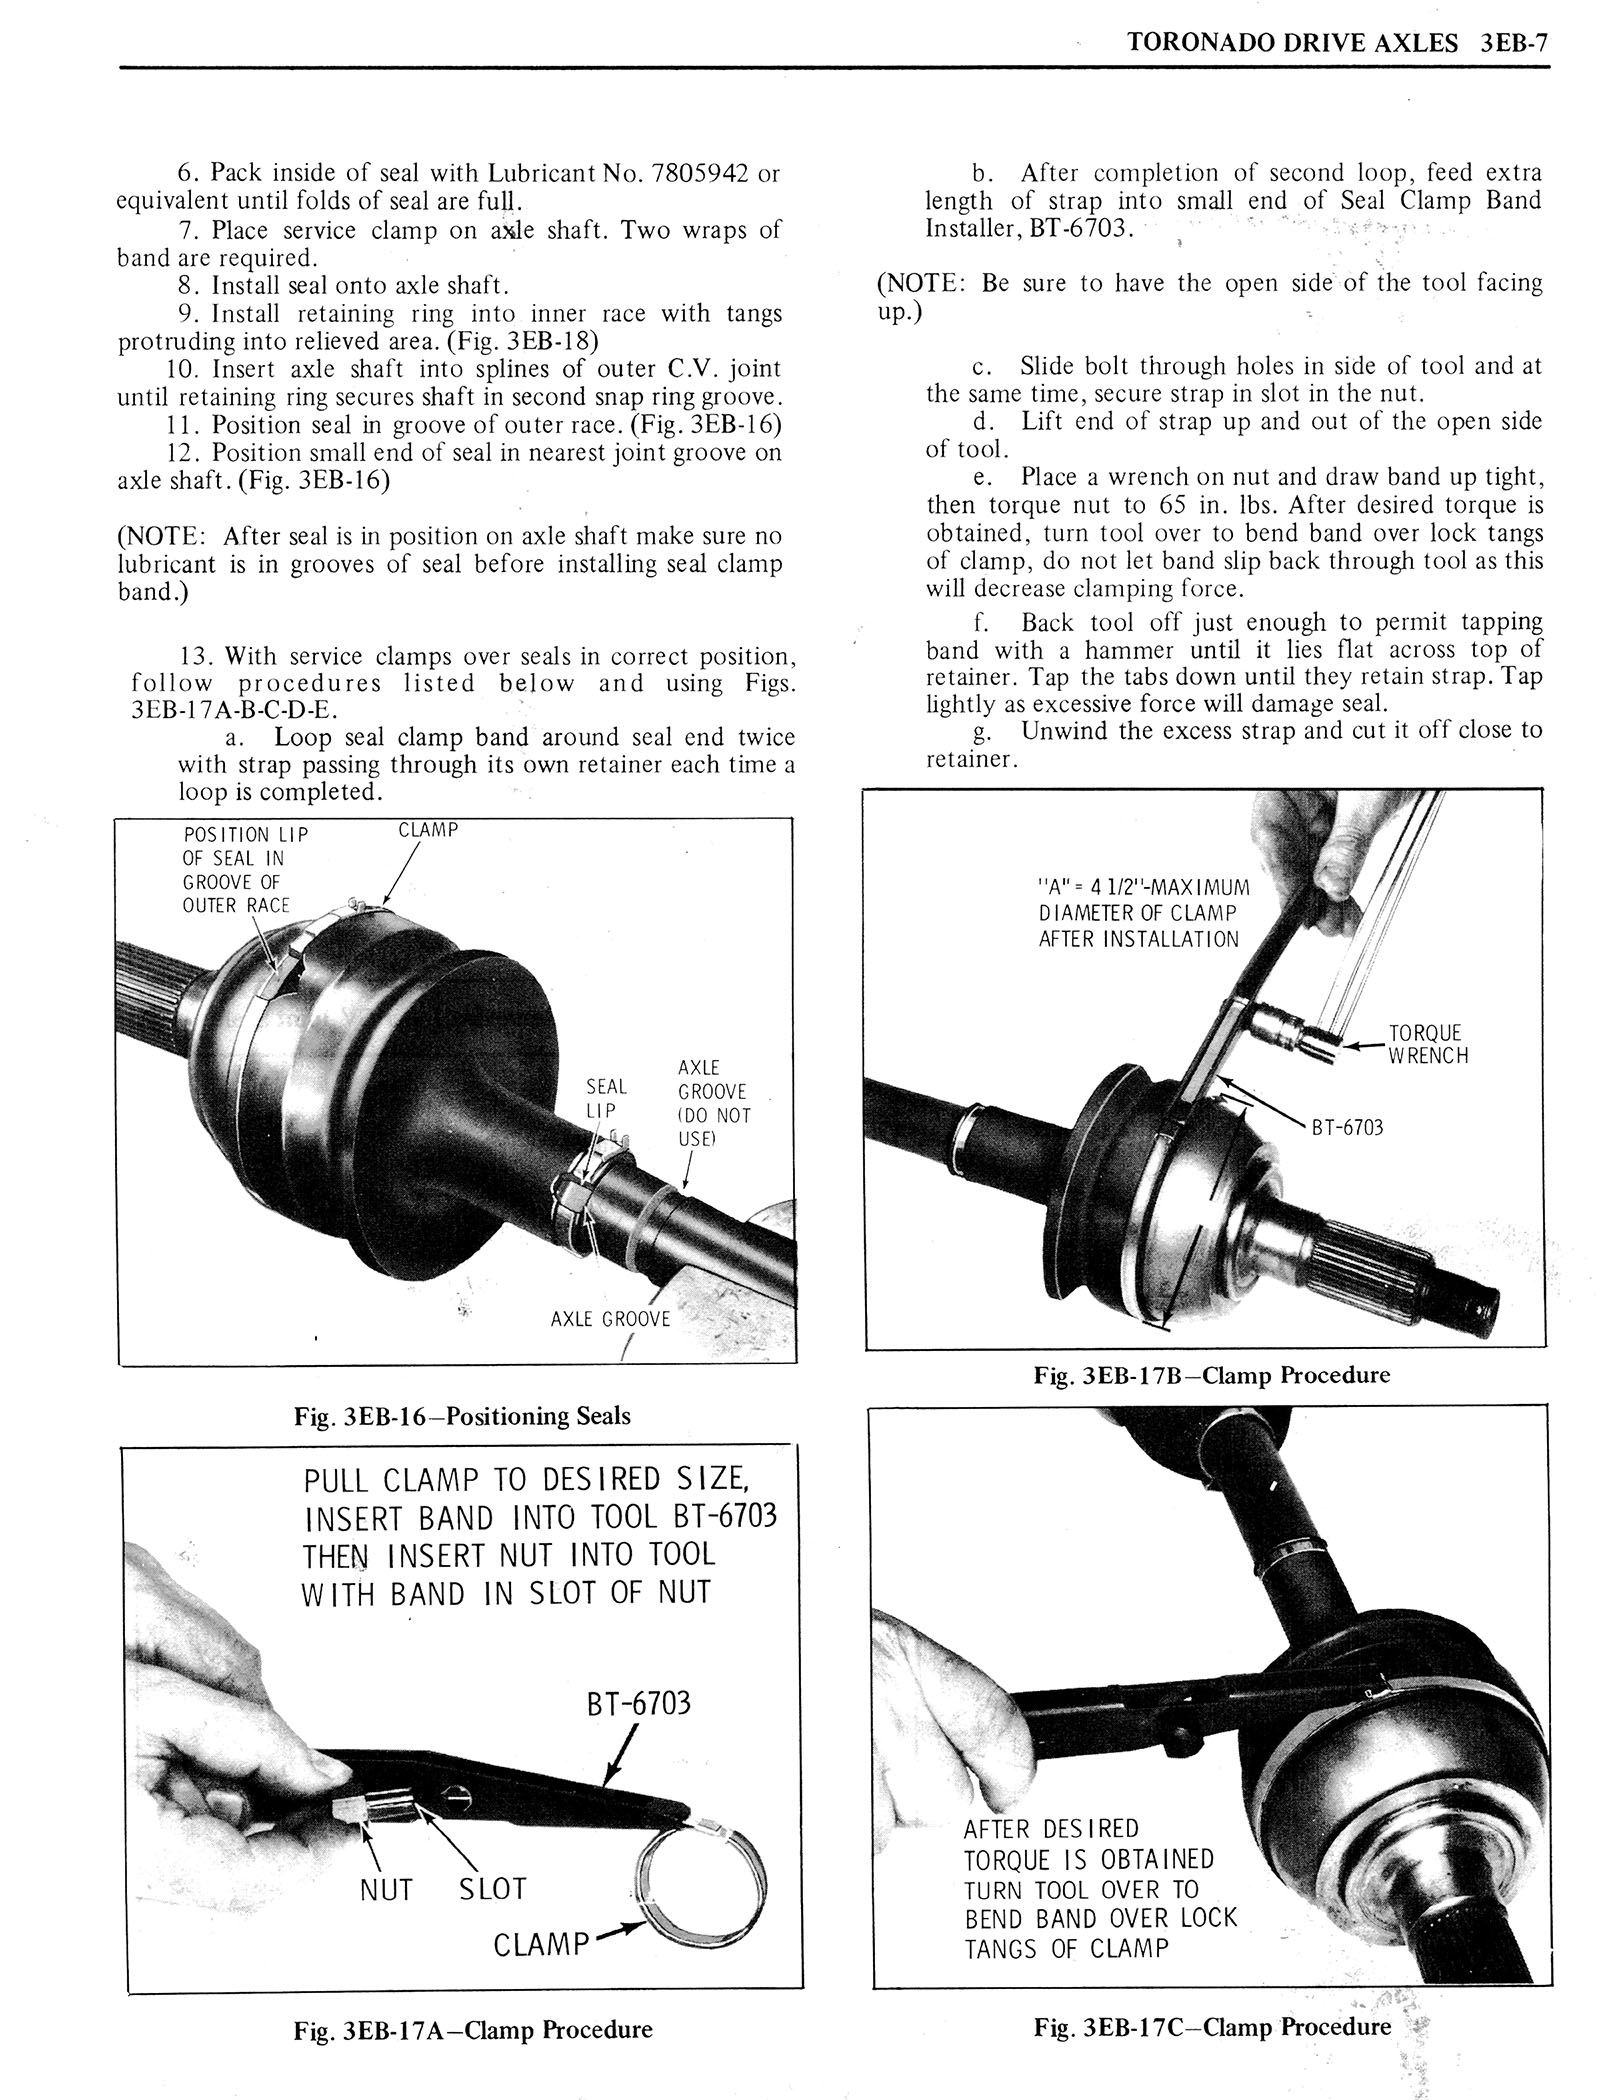 1976 Oldsmobile Service Manual page 231 of 1390